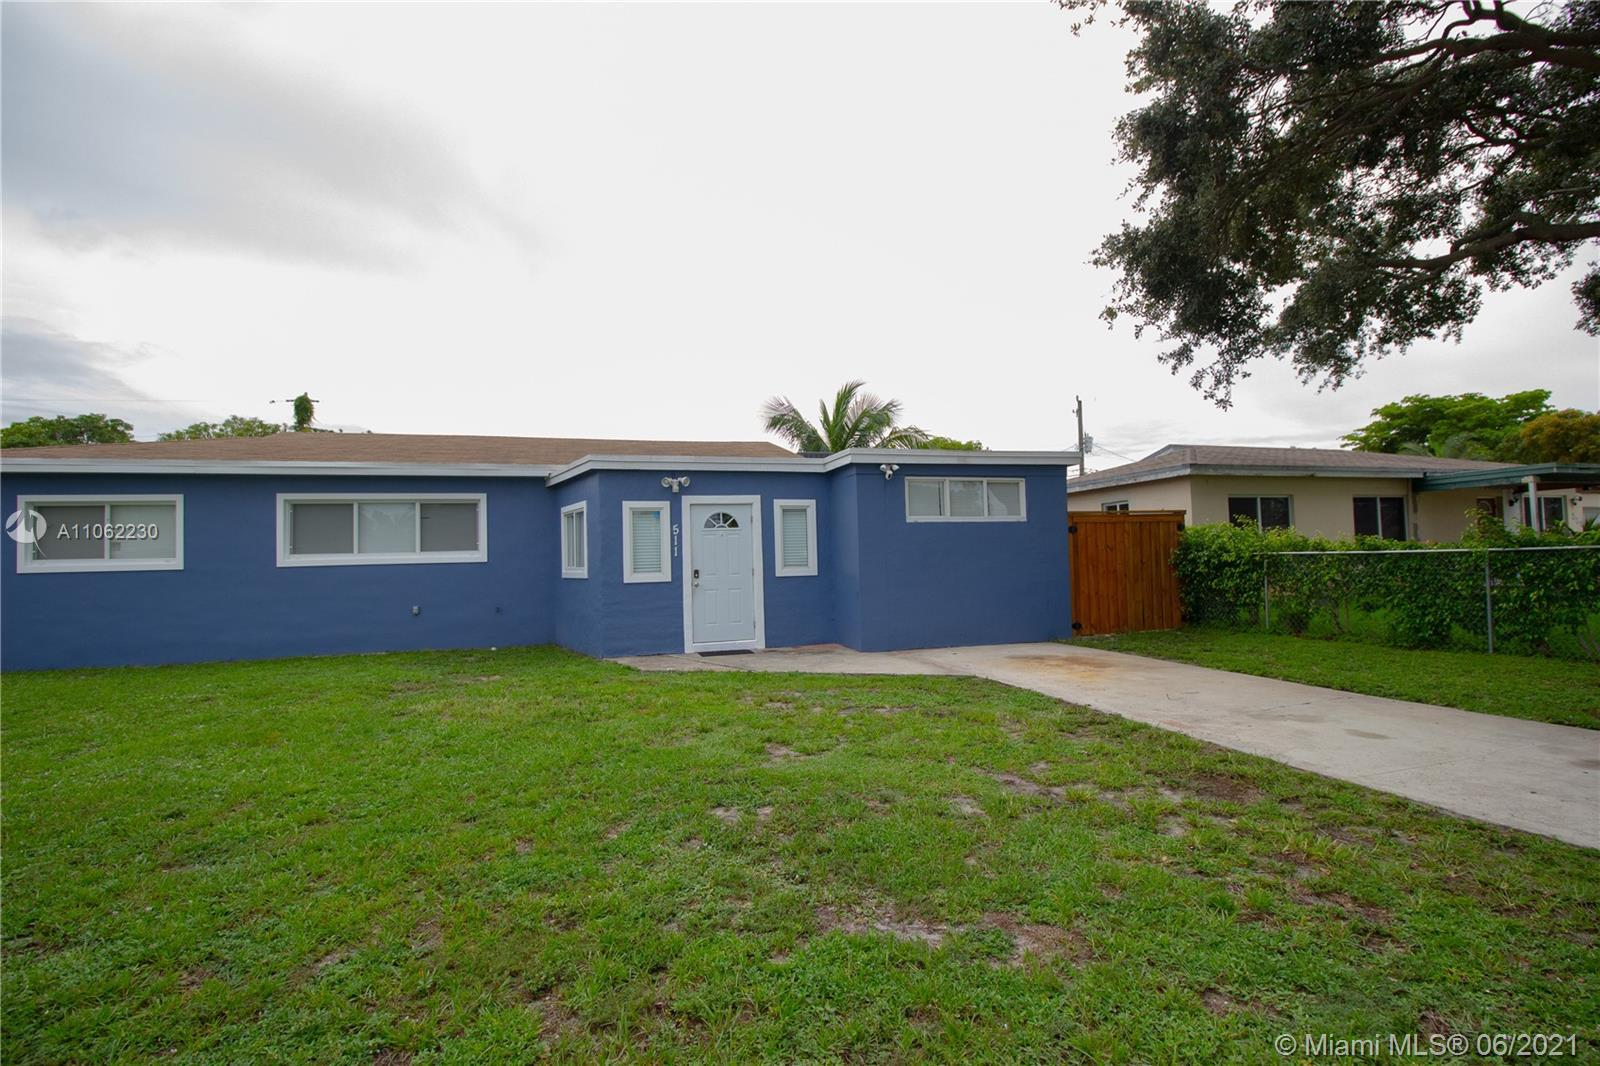 Newly remodeled home, perfect for first time homebuyers. This cozy property has a spacious backgroun